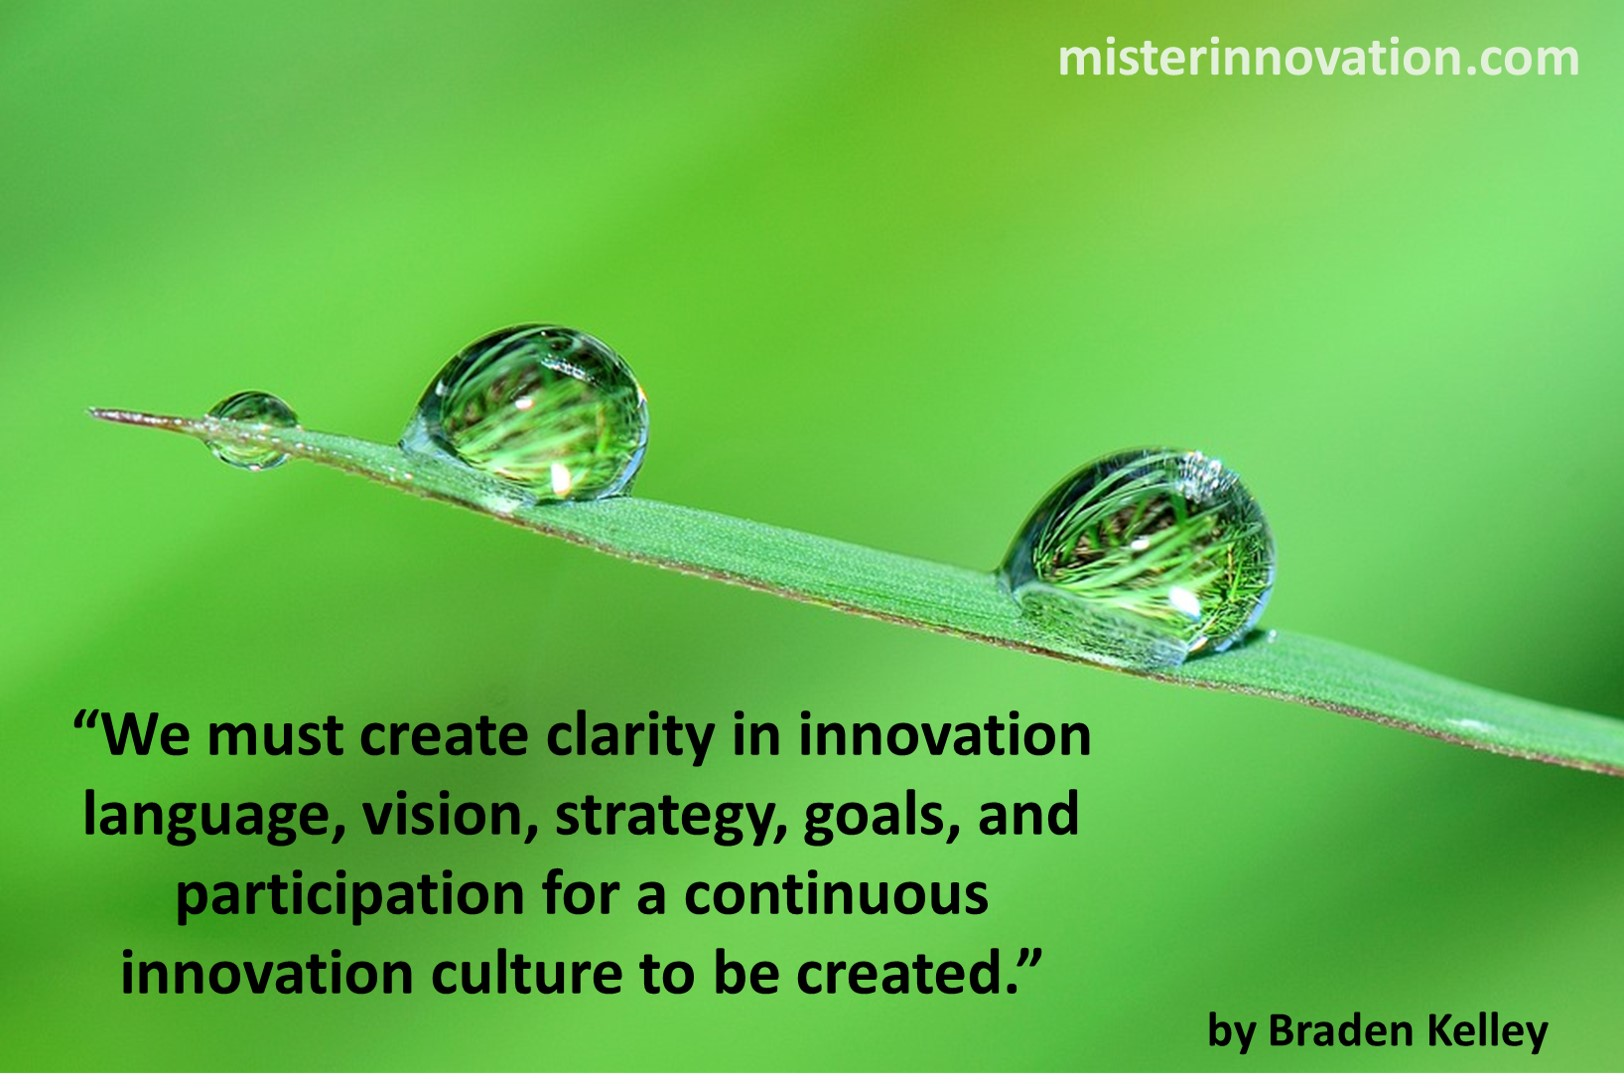 Quote on Clarity in Language Vision Goals from Braden Kelley